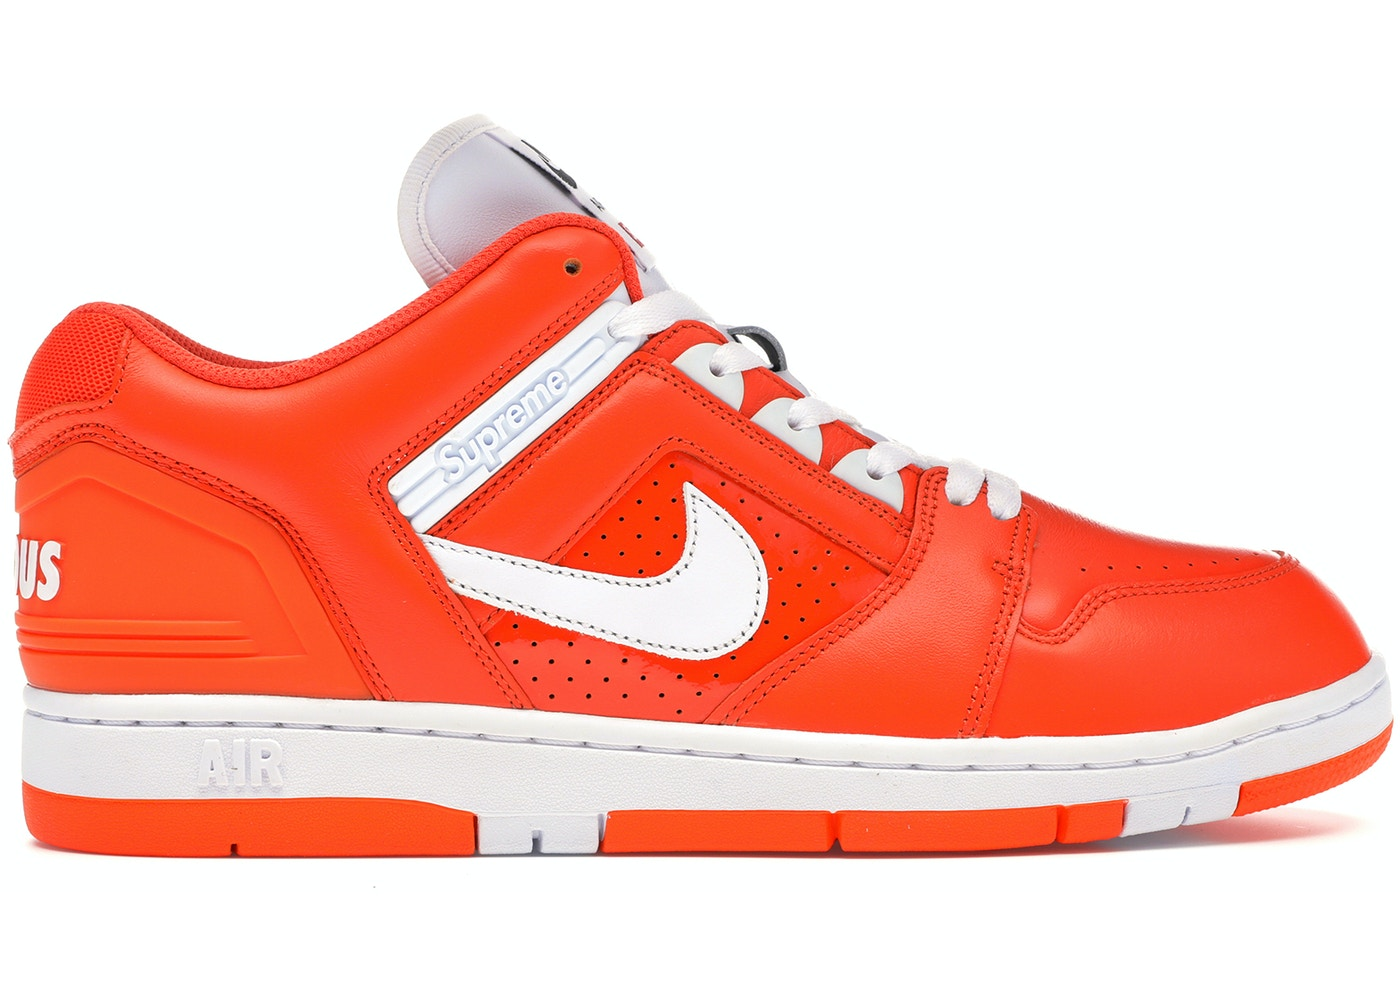 1402977bba57 Nike SB Air Force 2 Low Supreme Orange - AA0871-818